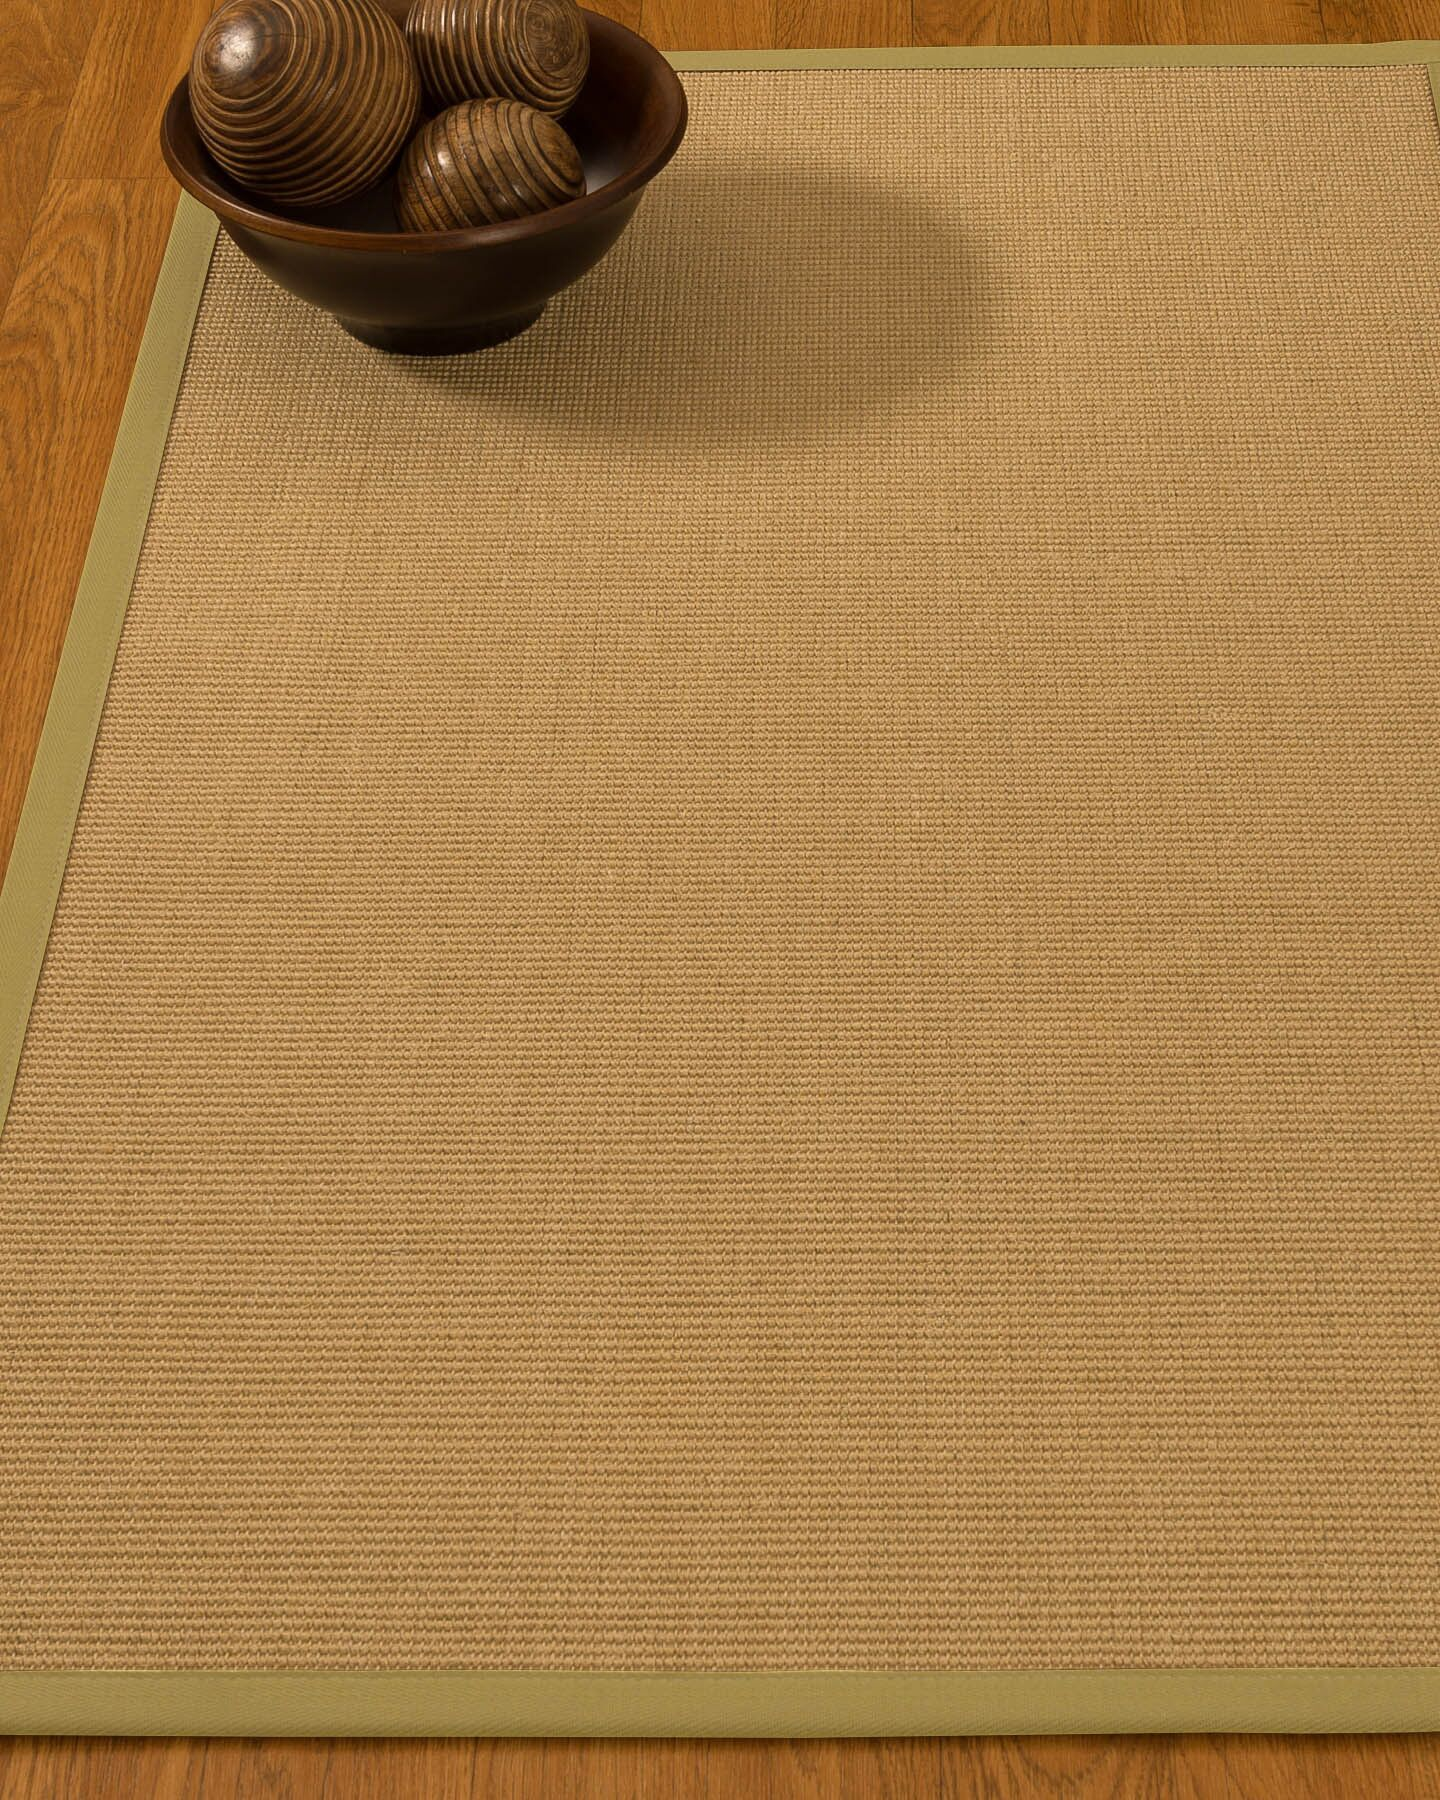 Buser Hand-Woven Beige Area Rug Rug Size: Rectangle 9' x 12'